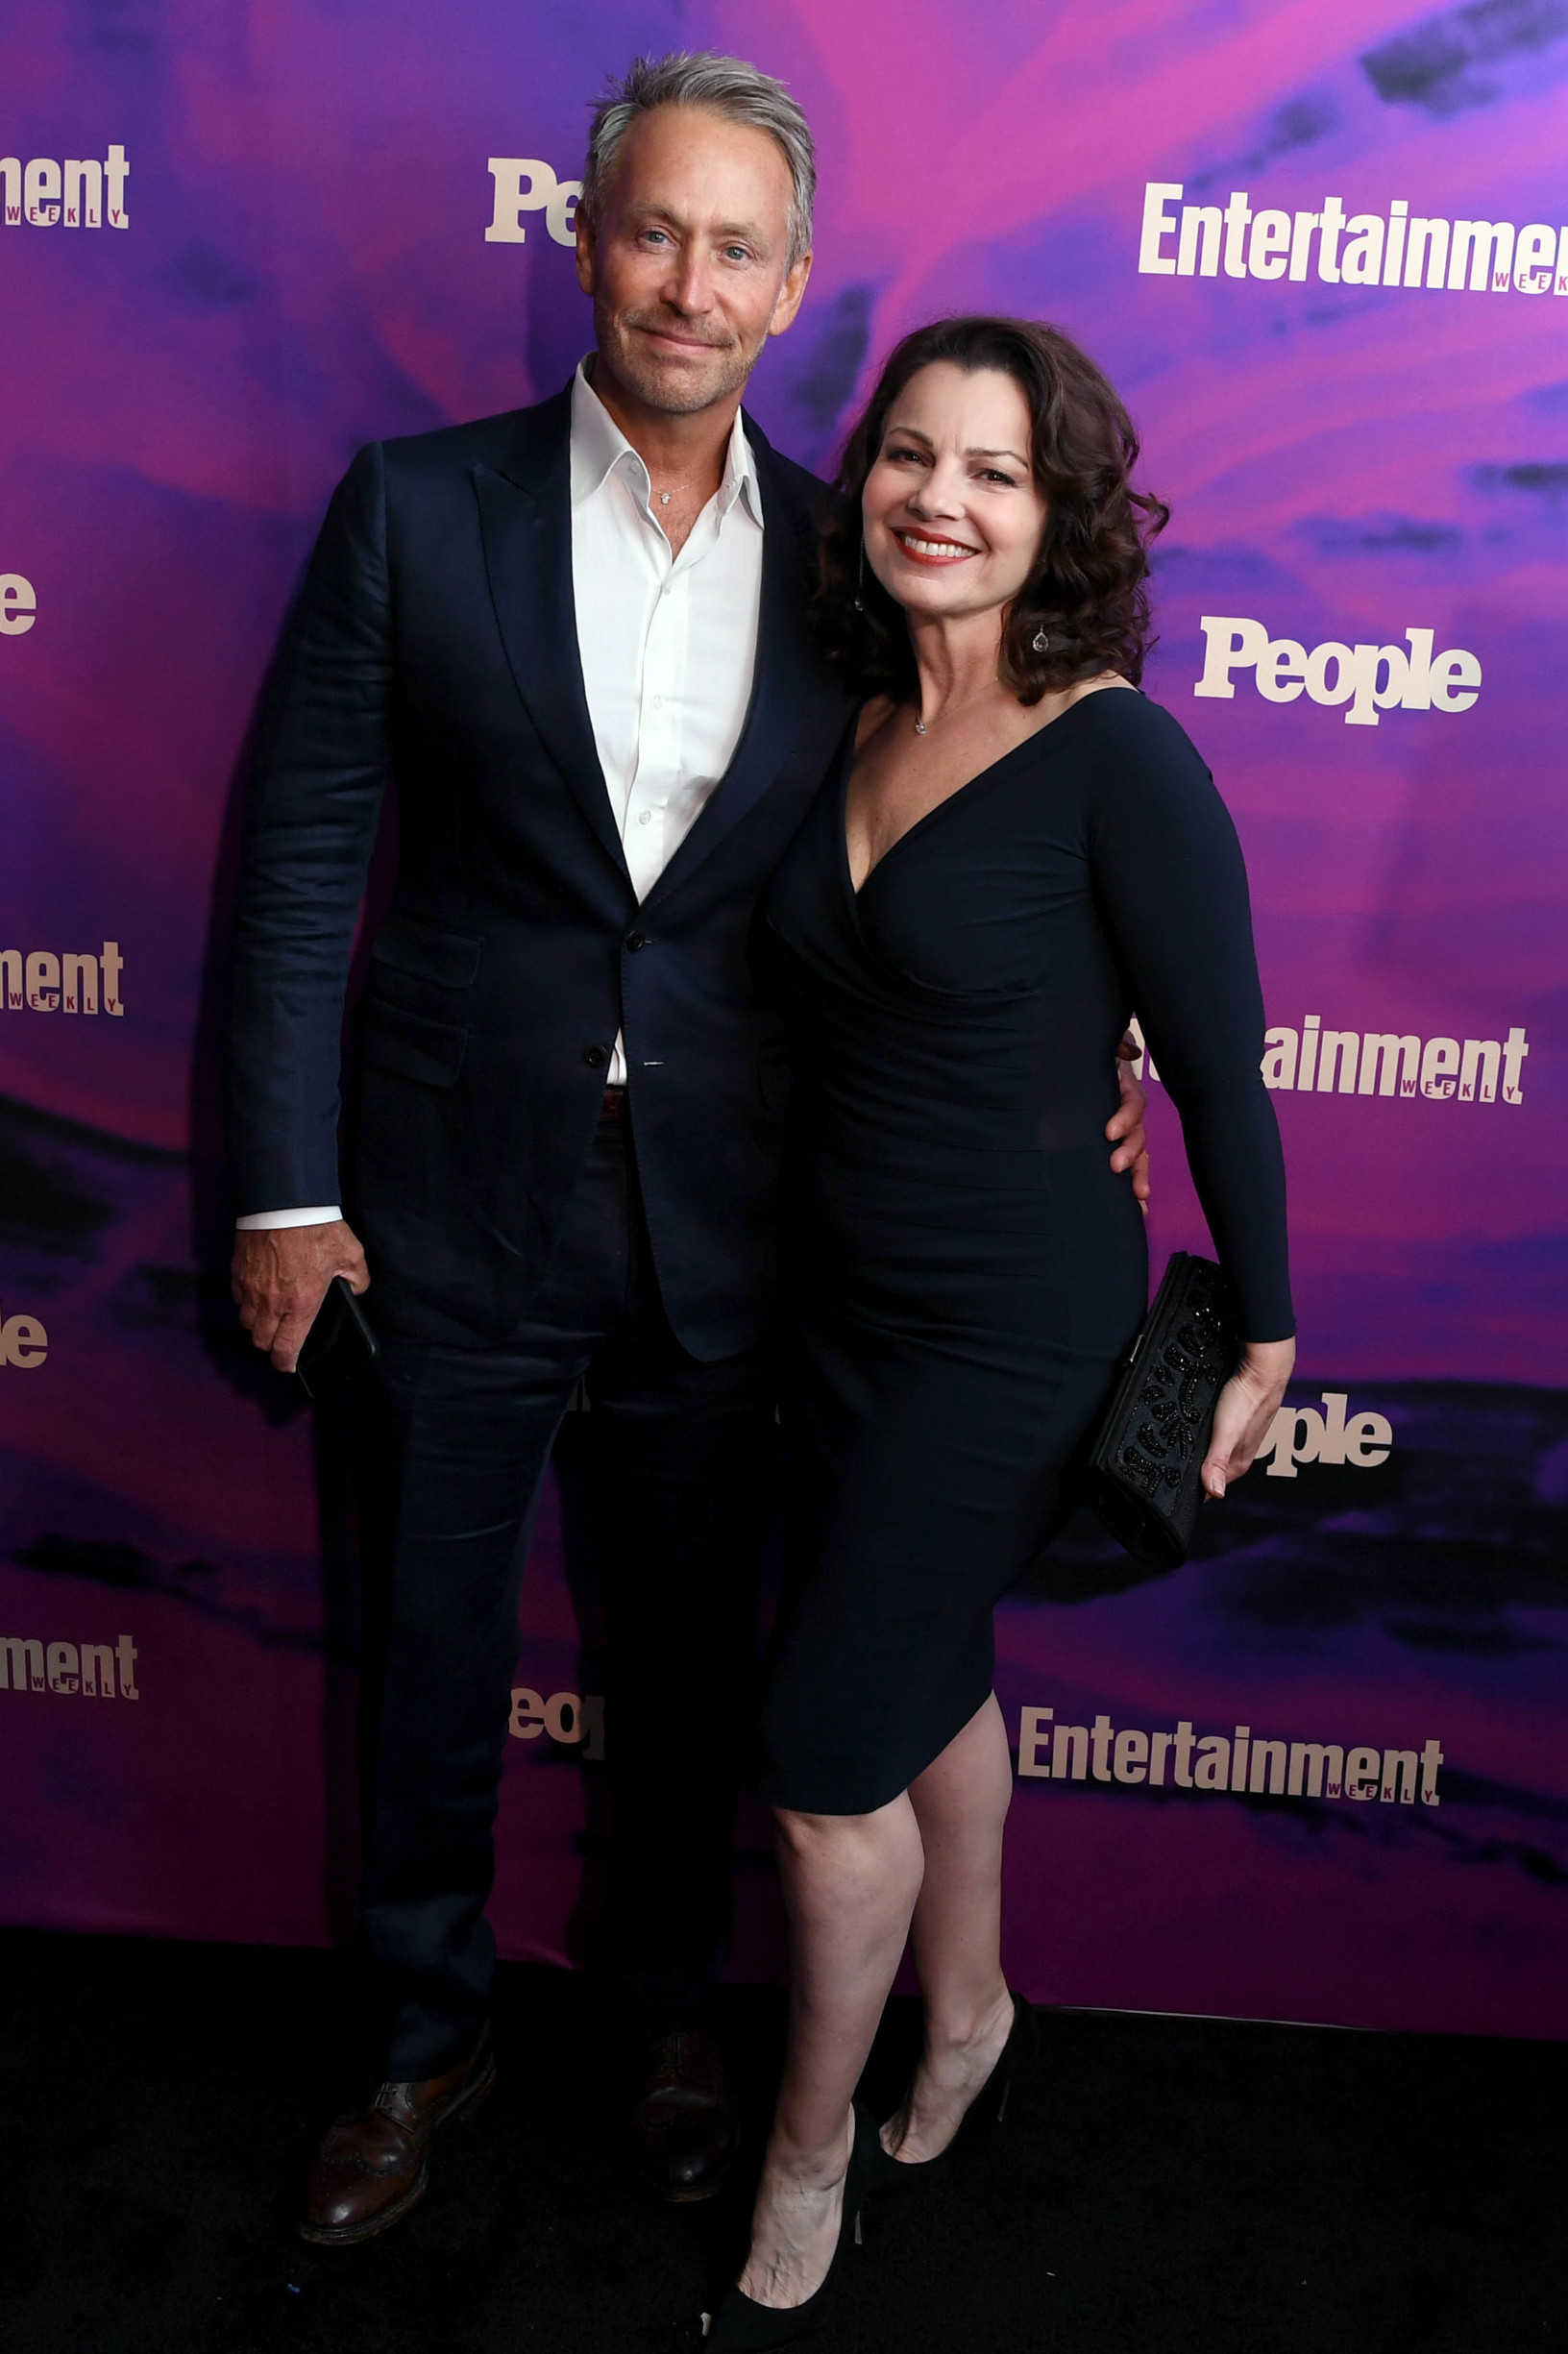 Peter Marc Jacobson and Fran Drescher Entertainment Weekly and People Magazine Upfront Party, Arrivals, Union Park, New York, USA - 13 May 2019, Image: 433014105, License: Rights-managed, Restrictions: , Model Release: no, Credit line: Stephen Lovekin / Shutterstock Editorial / Profimedia